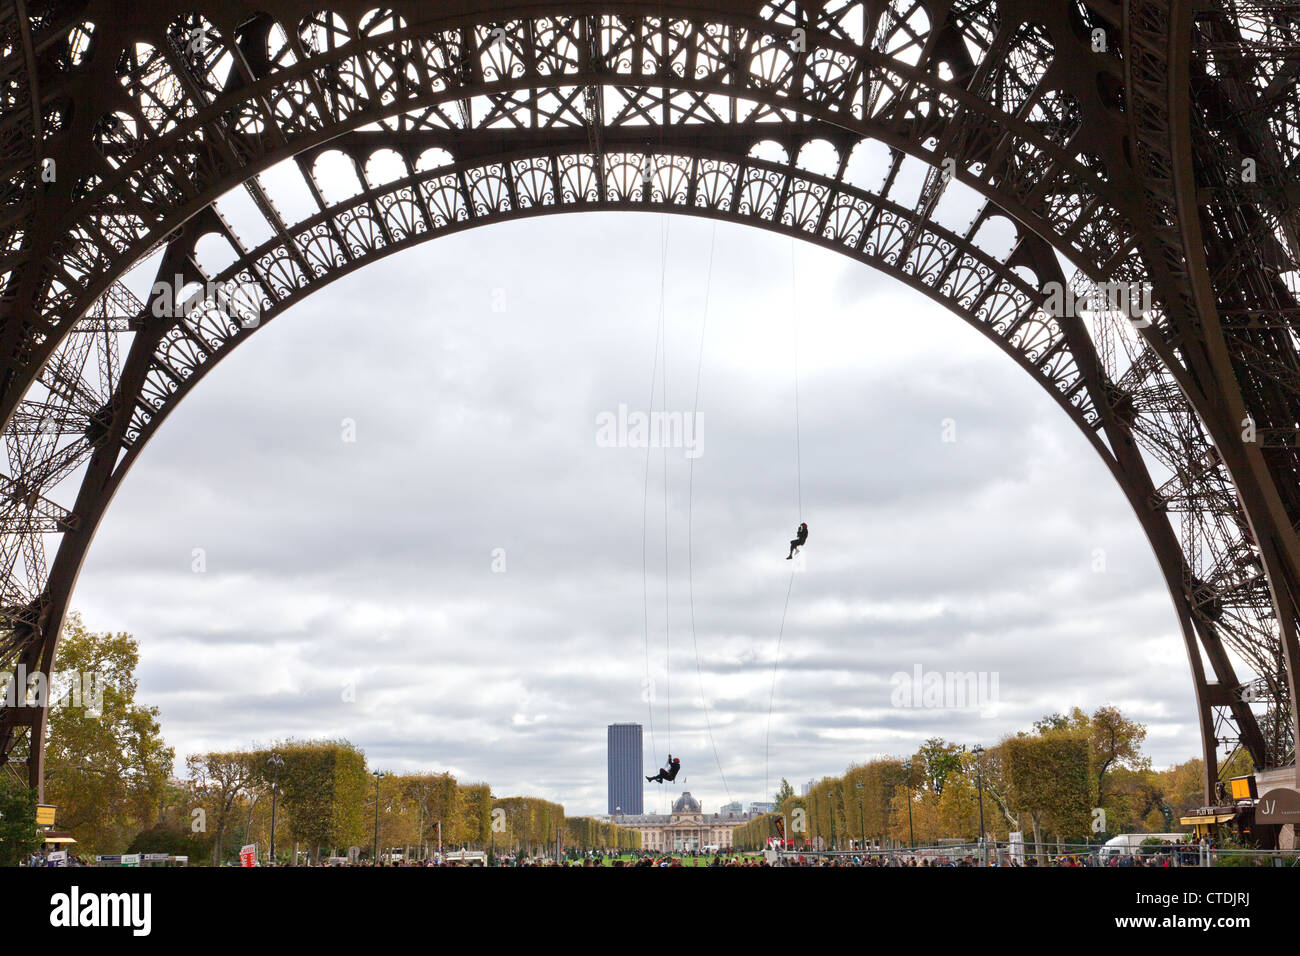 Paris, France: Paris firemen practice their skills from a base arch of the Eiffel Tower. Stock Photo